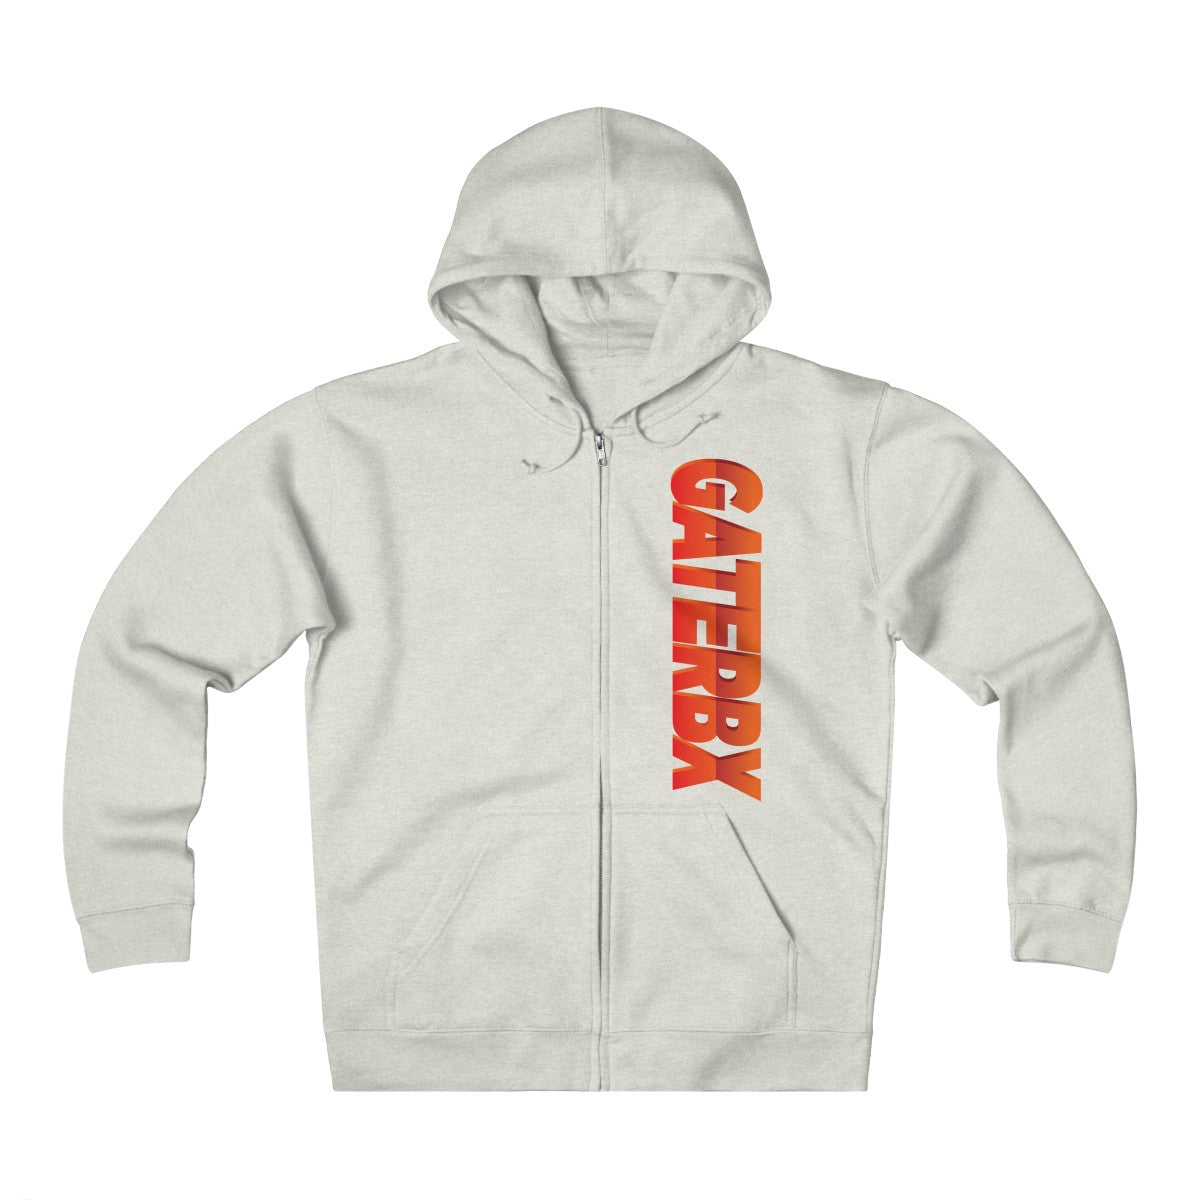 Unisex Heavyweight Fleece Zip Hoodie